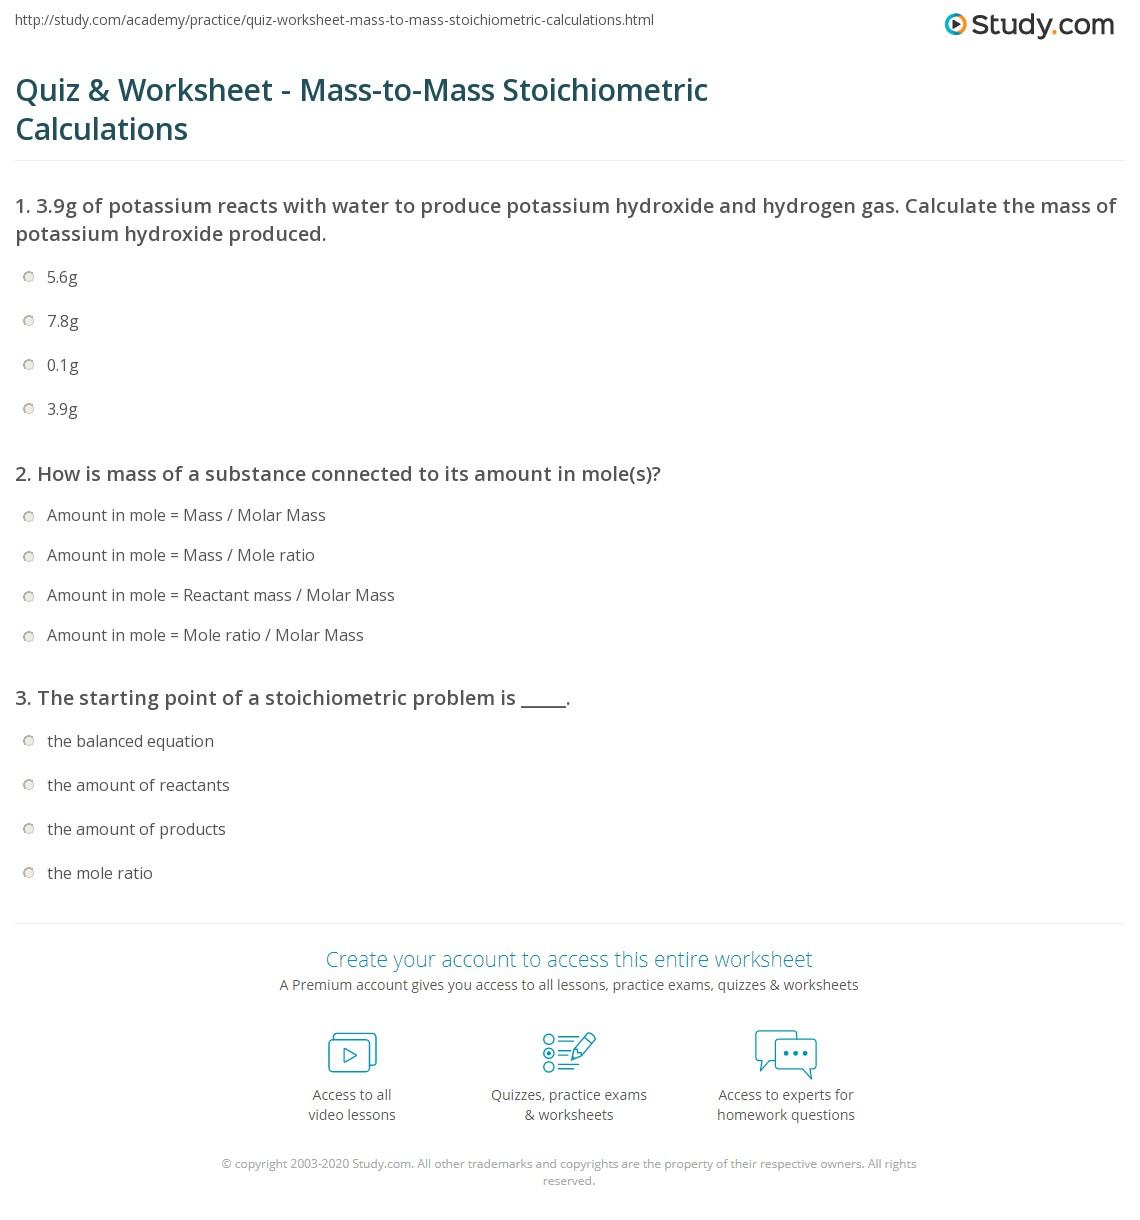 Printables Stoichiometry Worksheet Answers quiz worksheet mass to stoichiometric calculations print worksheet